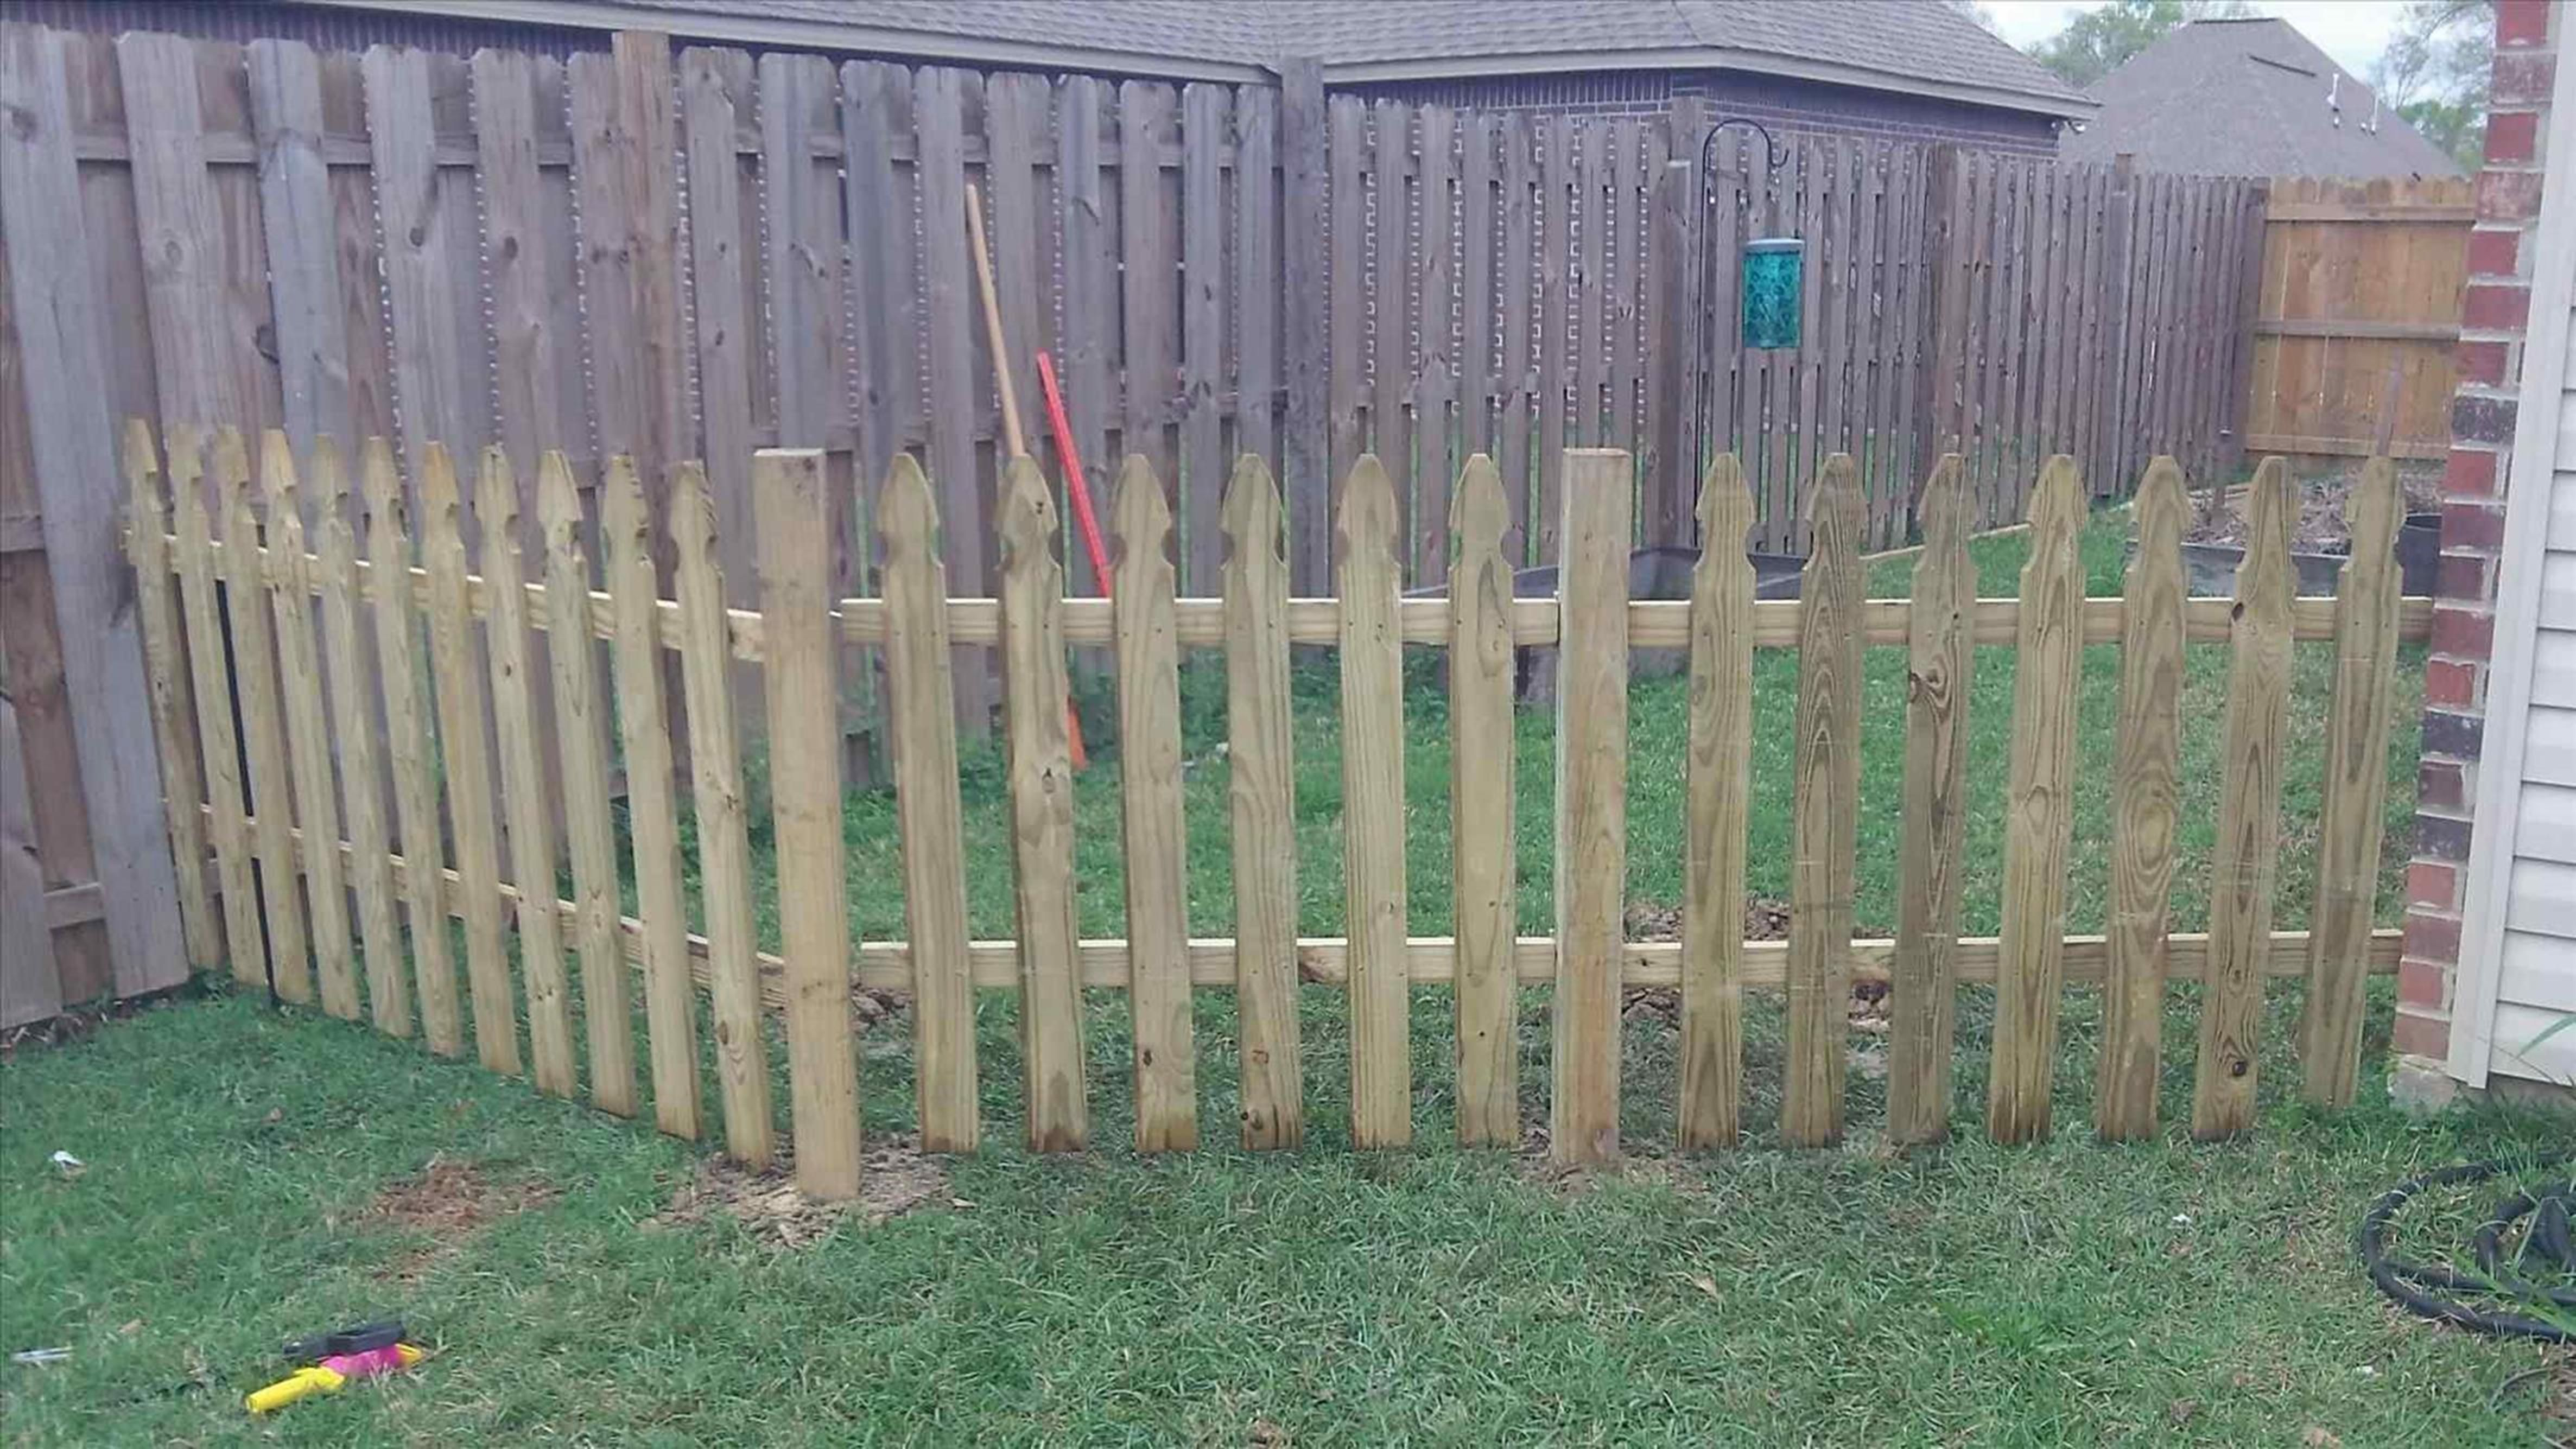 20 Inexpensive Temporary Fencing Ideas For Your Home 3 Dog Toy throughout 16 Clever Ways How to Make Temporary Backyard Fence